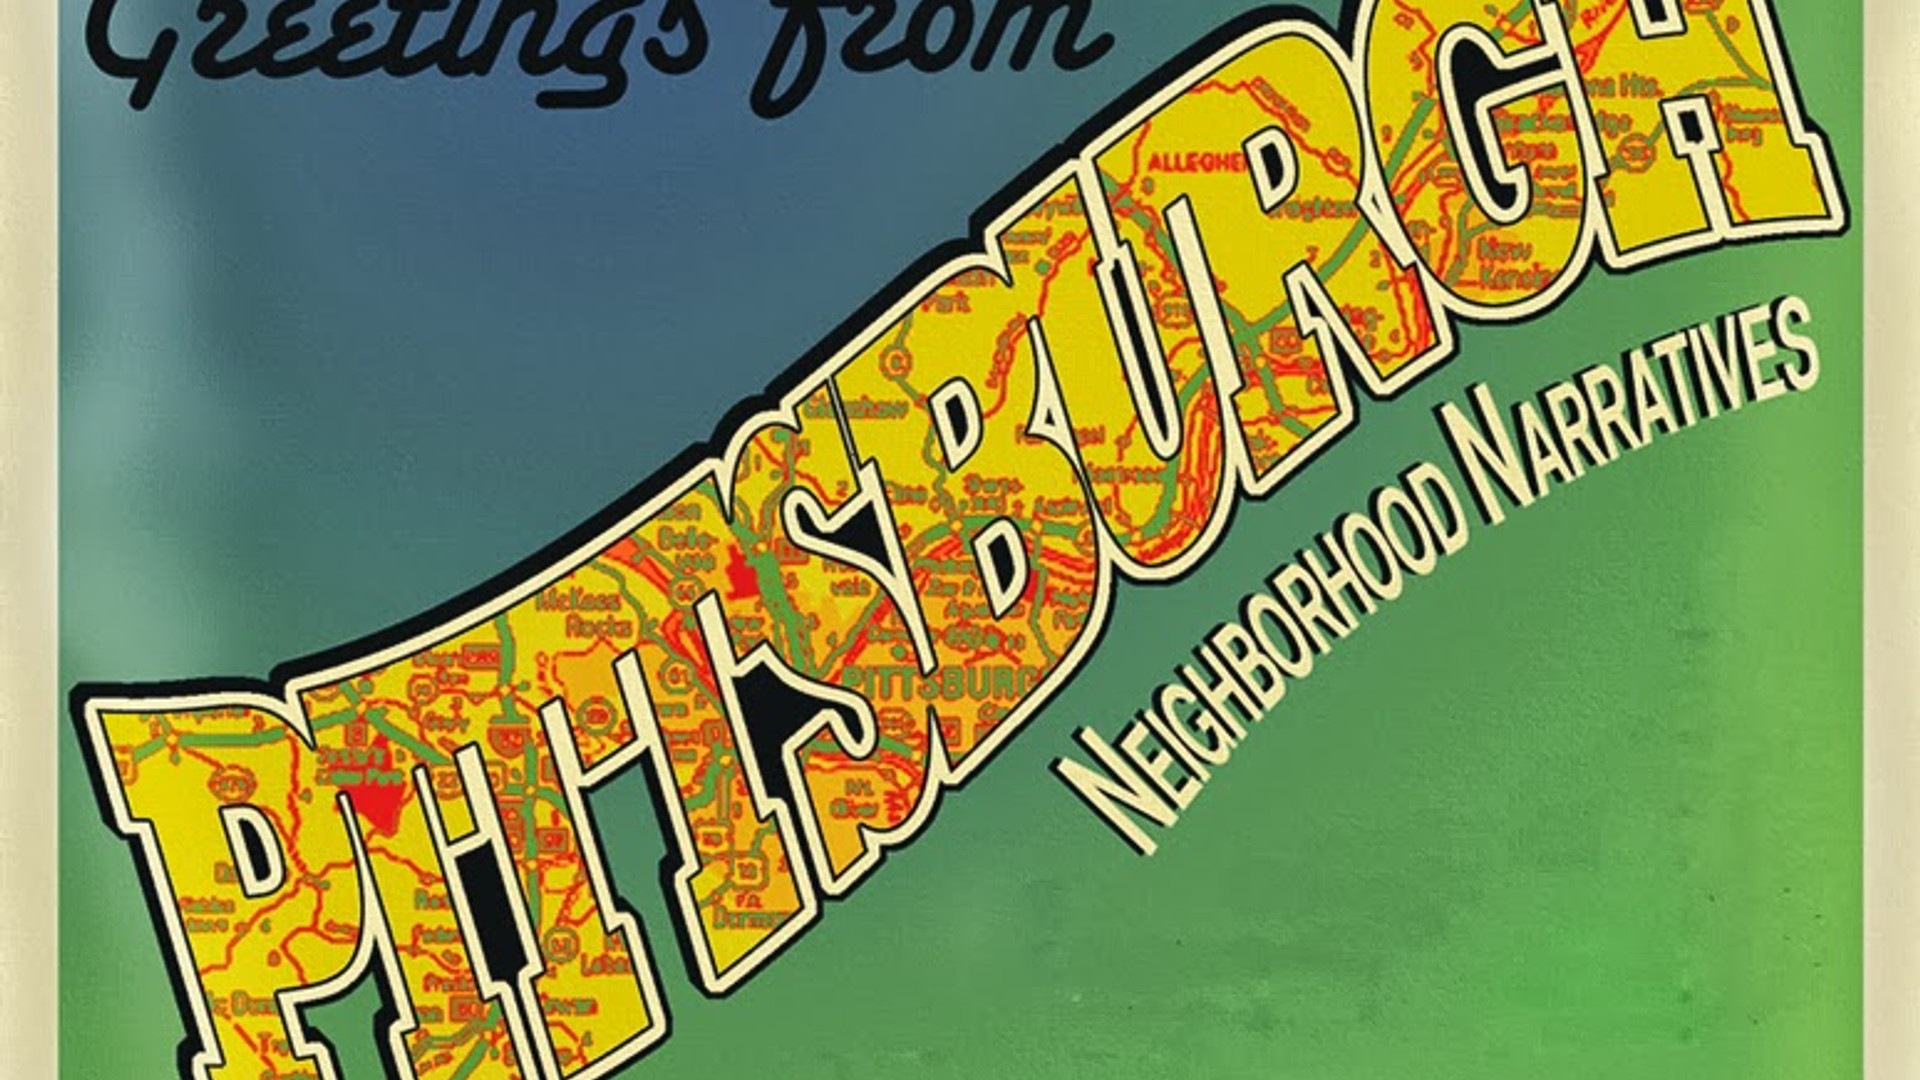 Greetings from Pittsburgh: Neighborhood Narratives Trailer (feature film, 120 min.)